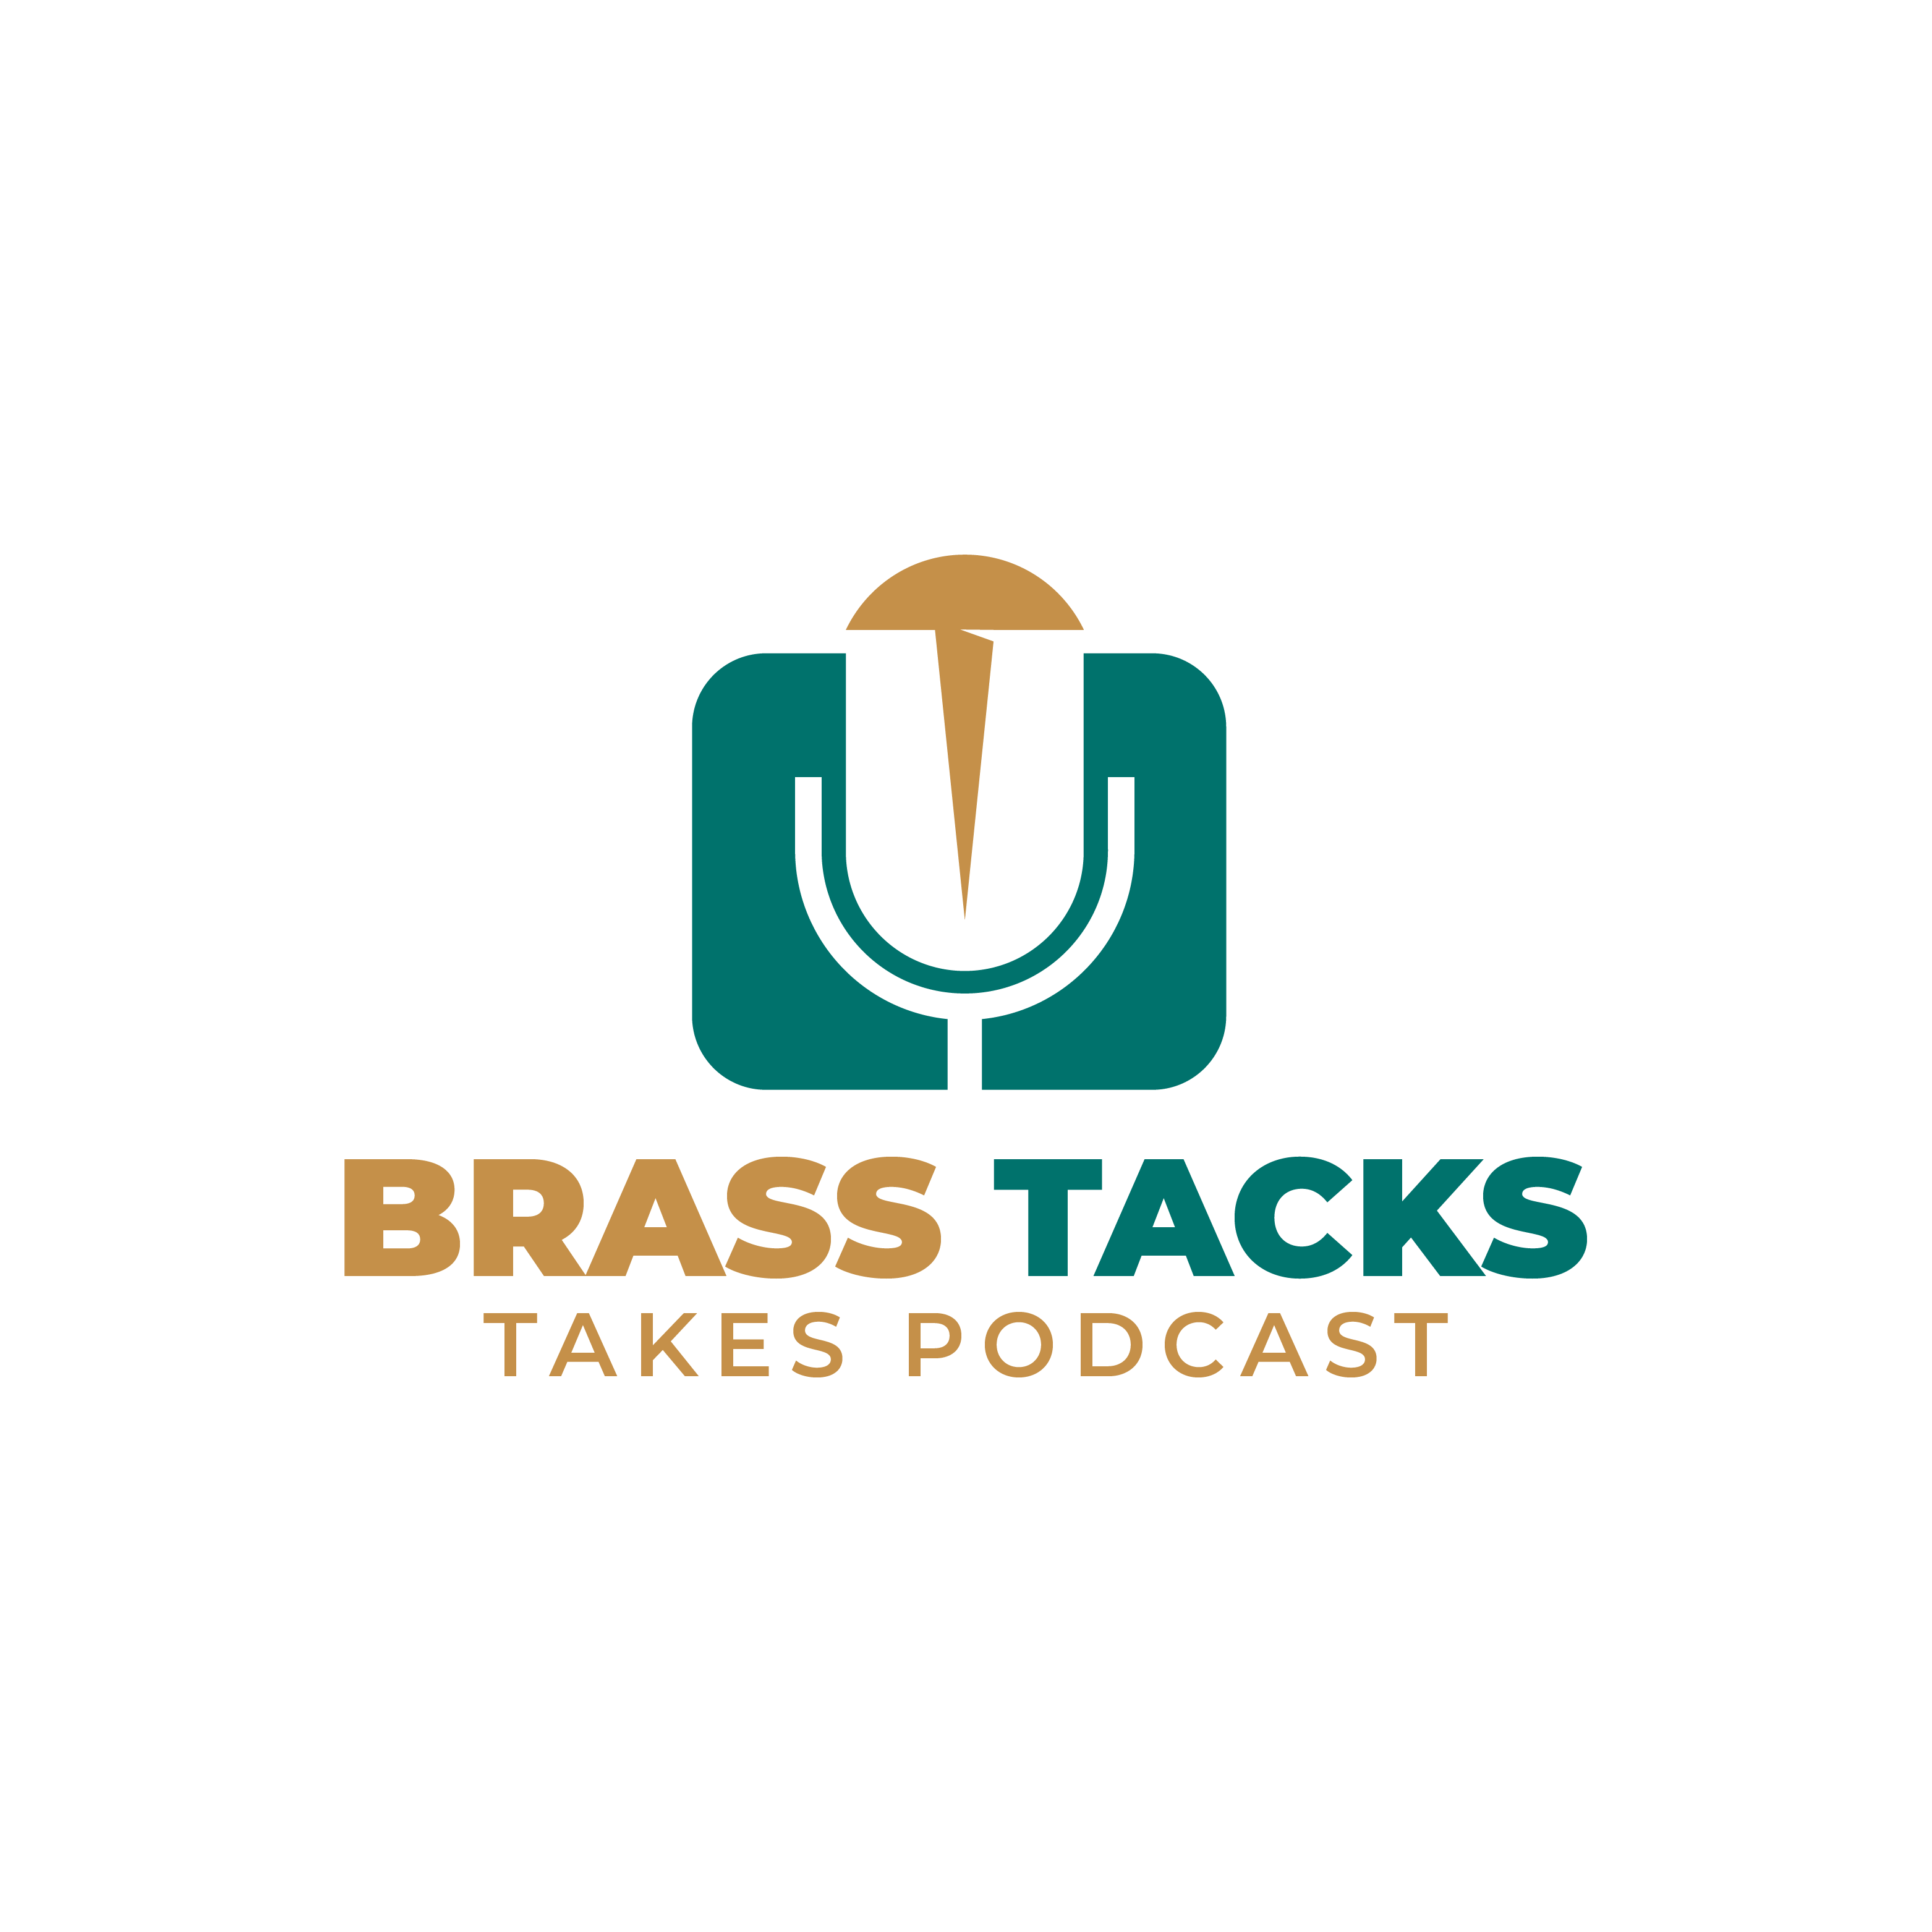 Podcast logo to appeal to all NFL fans